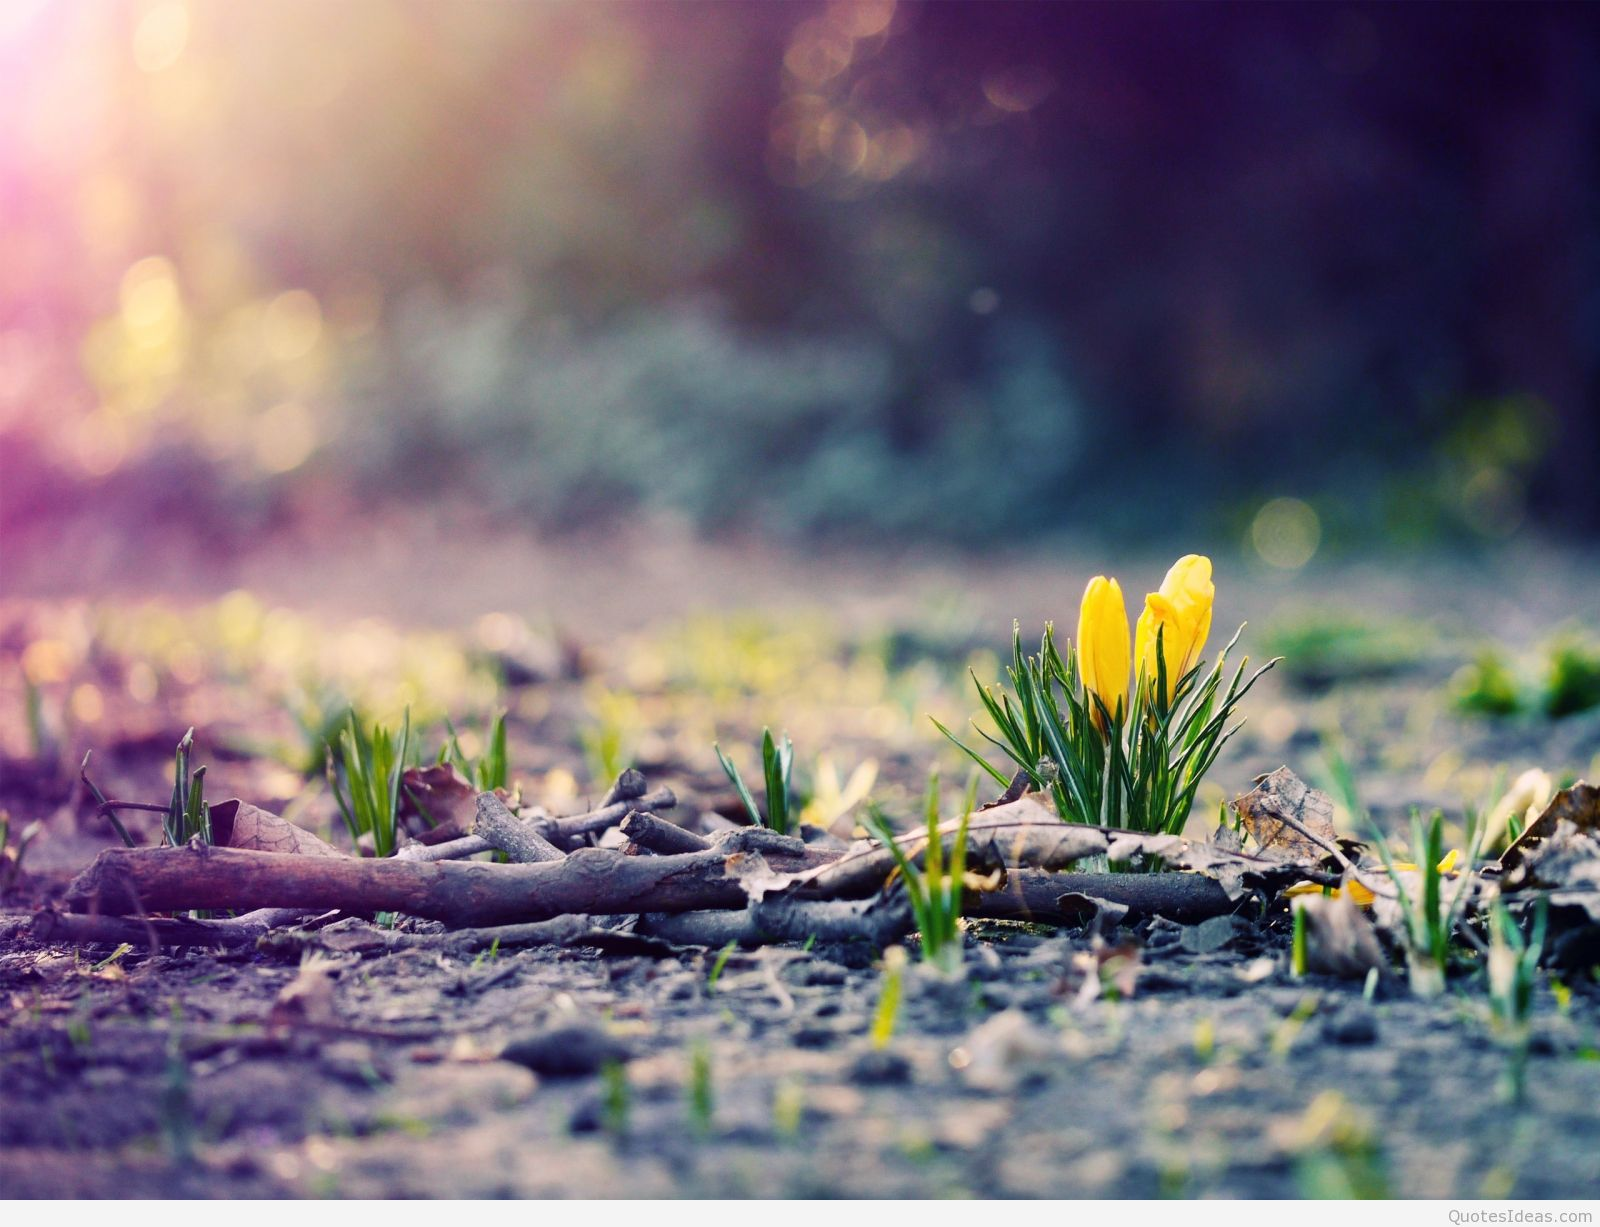 tag archives wallpaper march spring march april spring wallpapers 2016